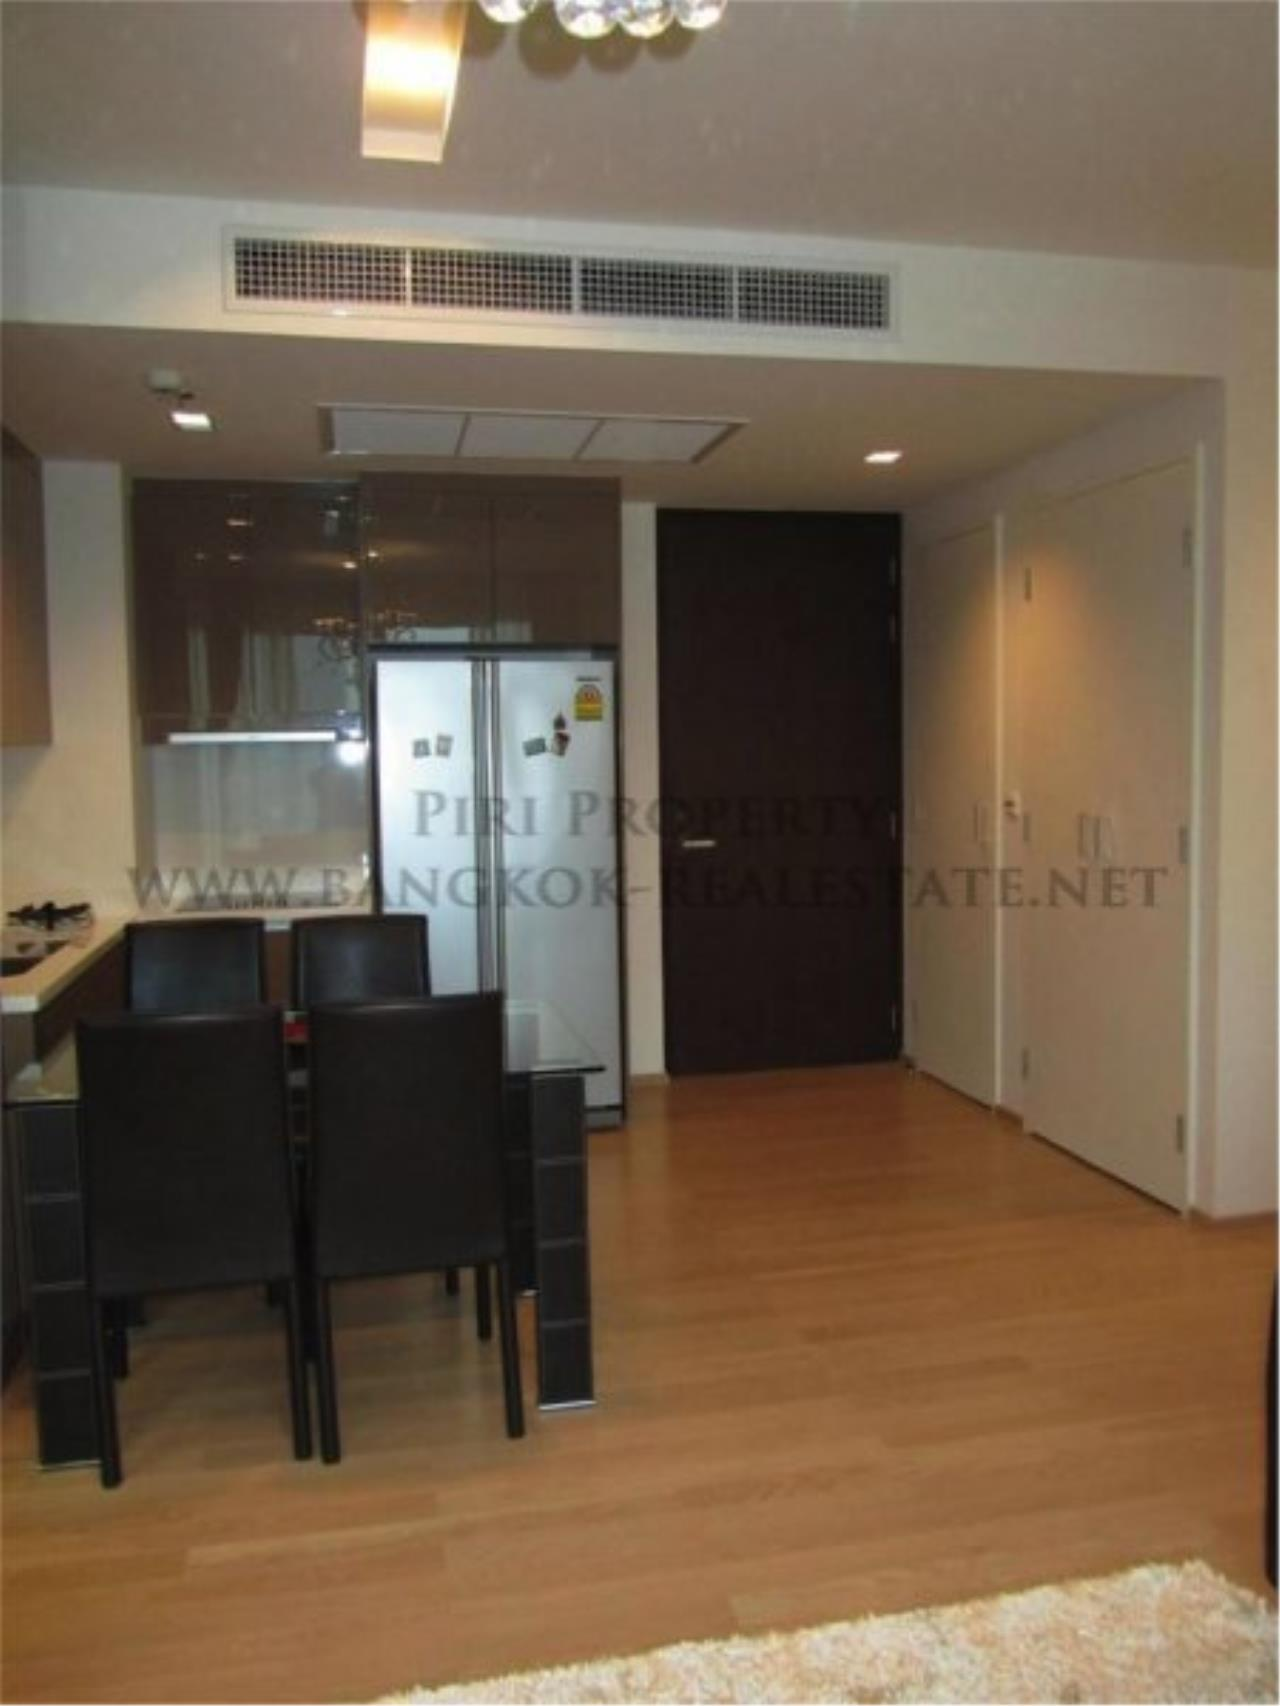 Piri Property Agency's 2 Bedroom Condo just a minute walk away from the Thonglor BTS - Siri at Sukhumvit 4